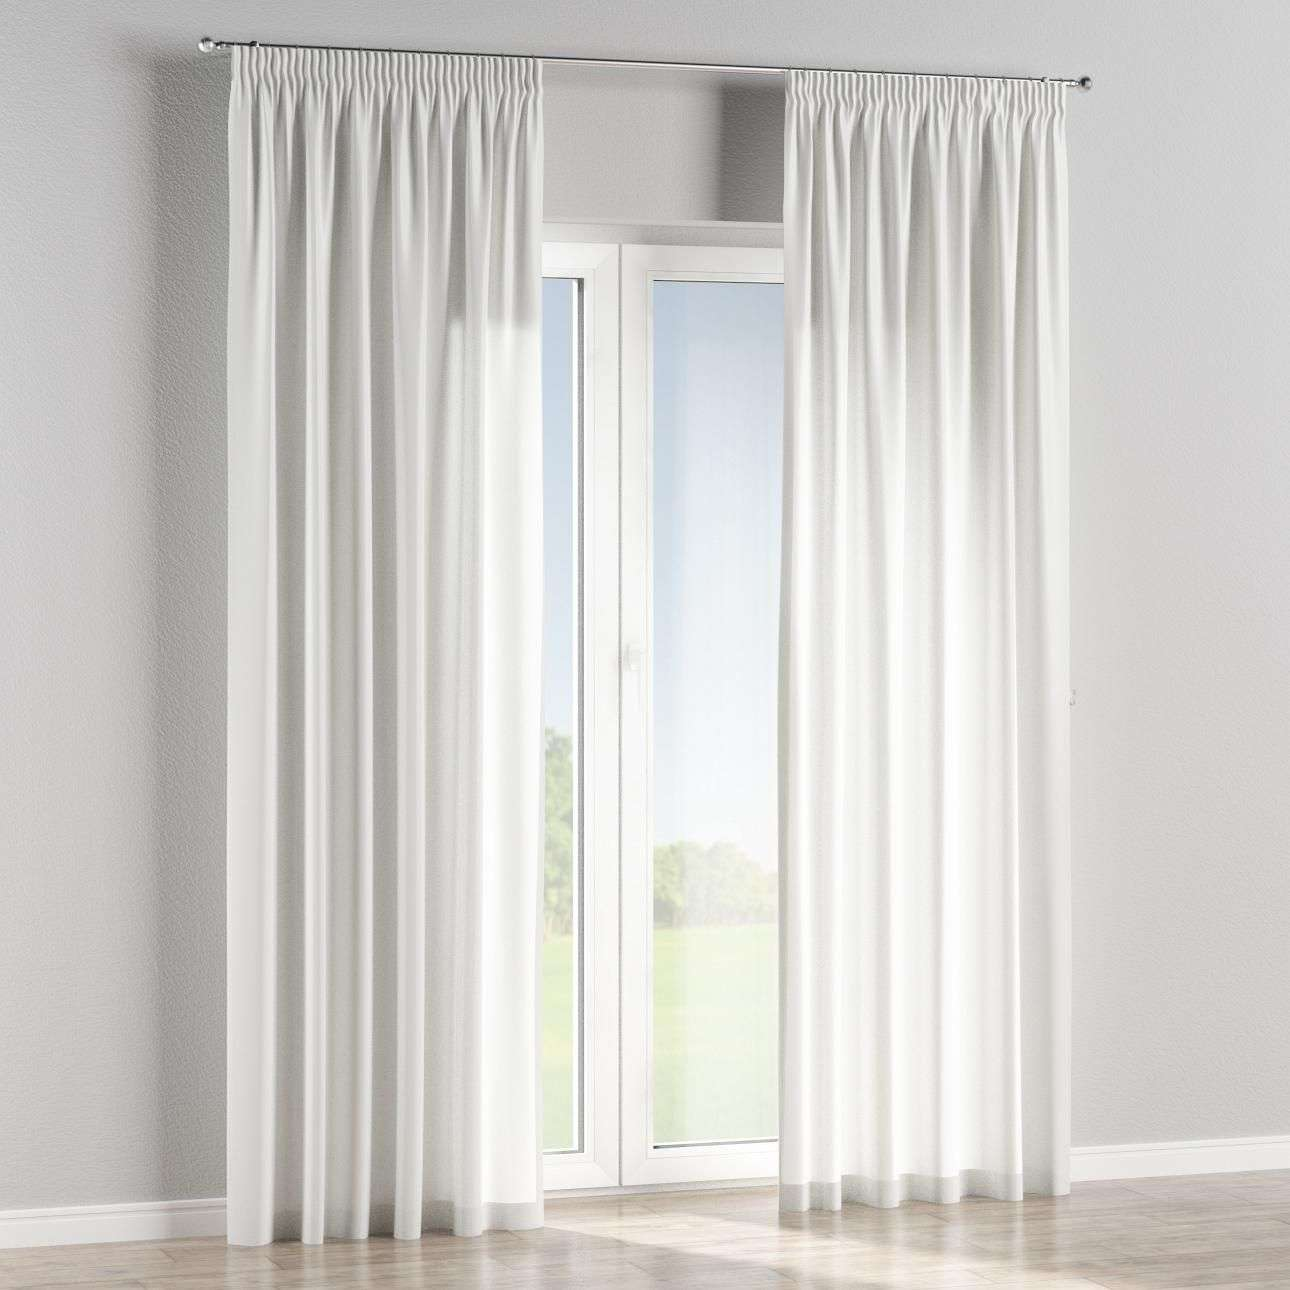 Pencil pleat curtains in collection Rustica, fabric: 140-85